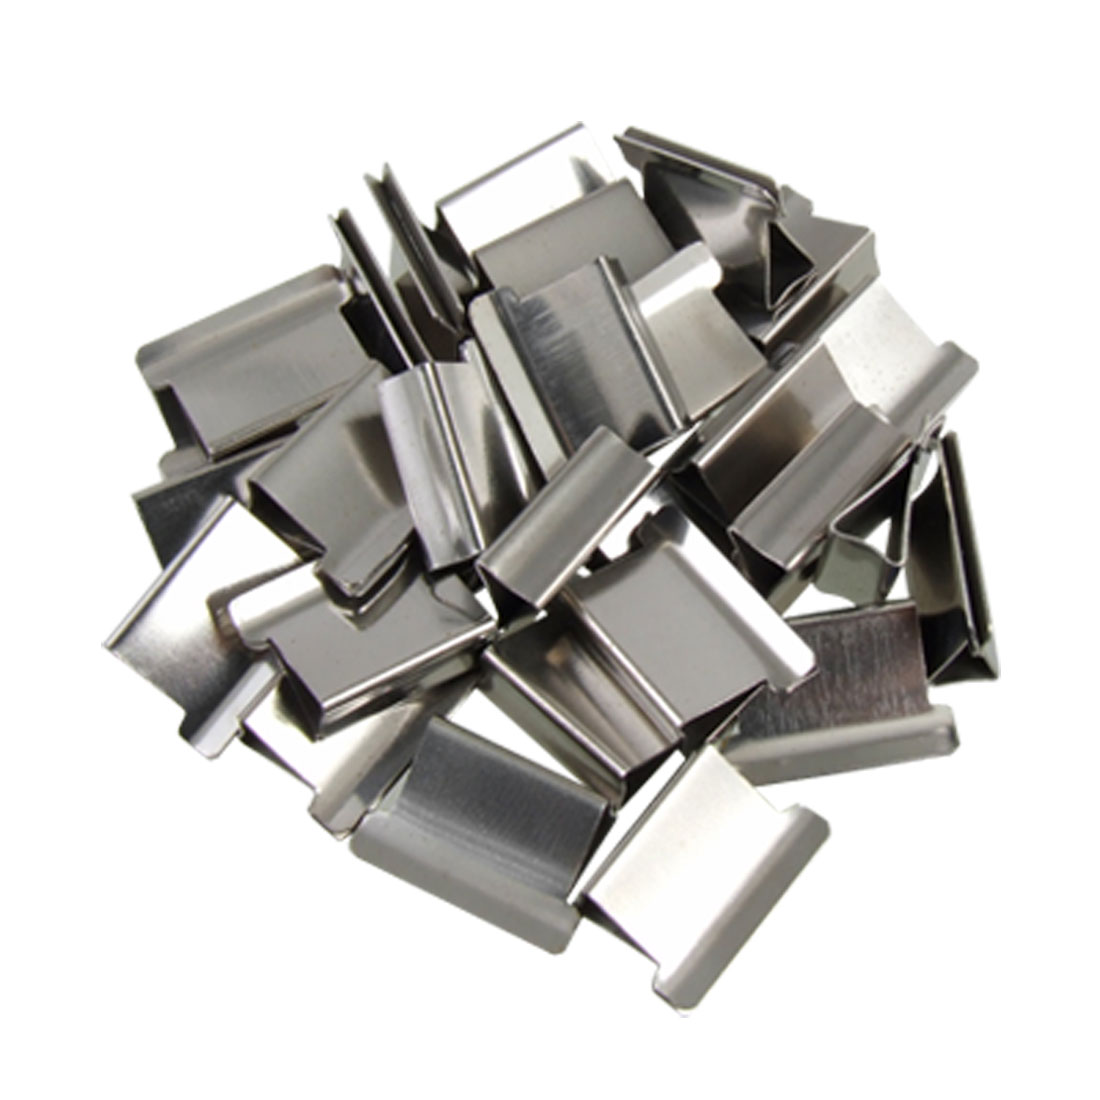 30Pcs Silver Tone Reusable Fast Clam Clip Dispenser Refill